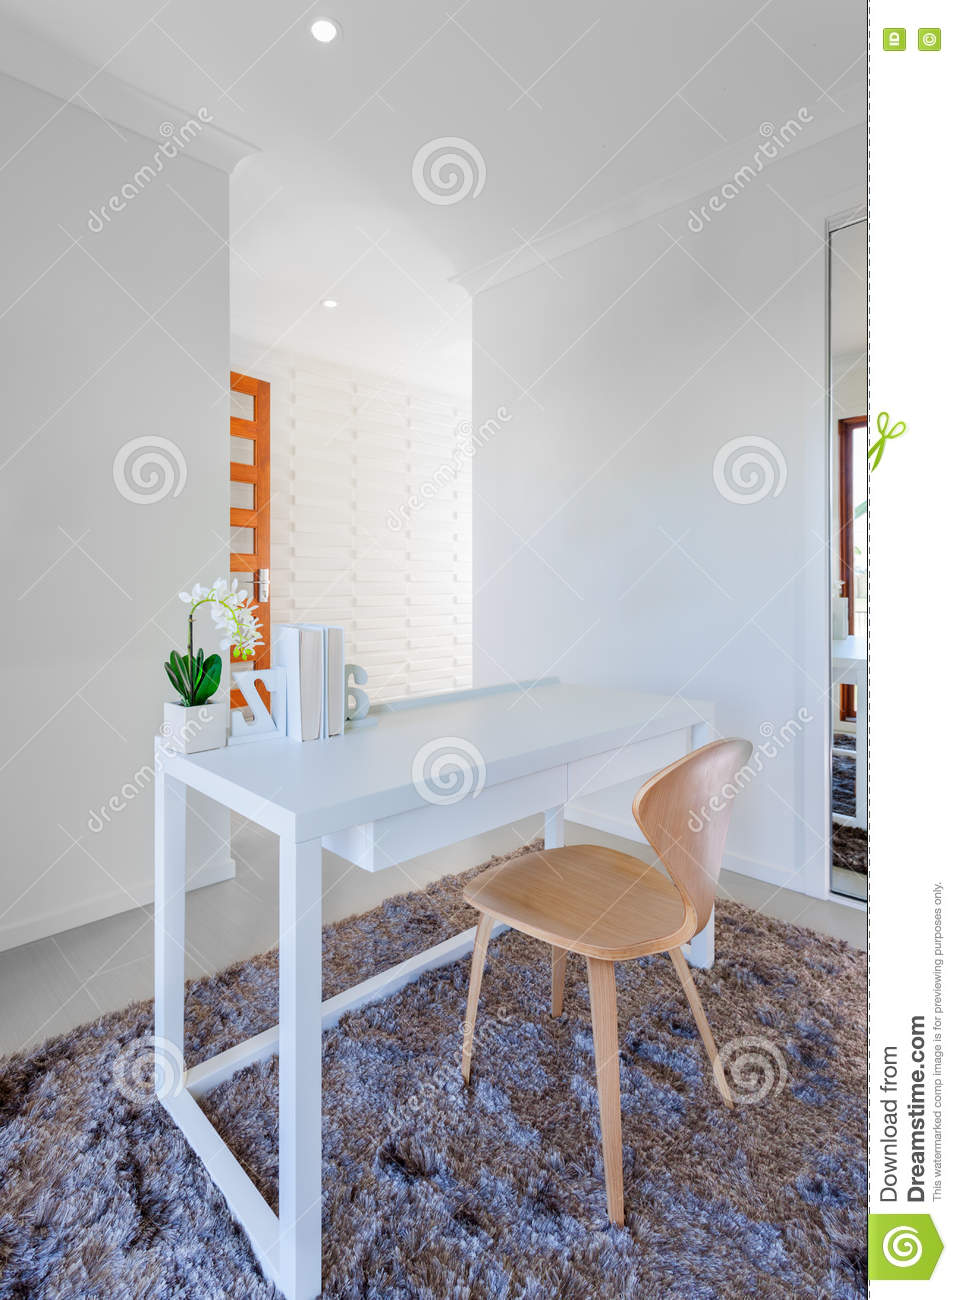 Download White Wooden Table And Light Wooden Chair In The Modern Room Stock Photo - Image of decoration, inside: 80486172